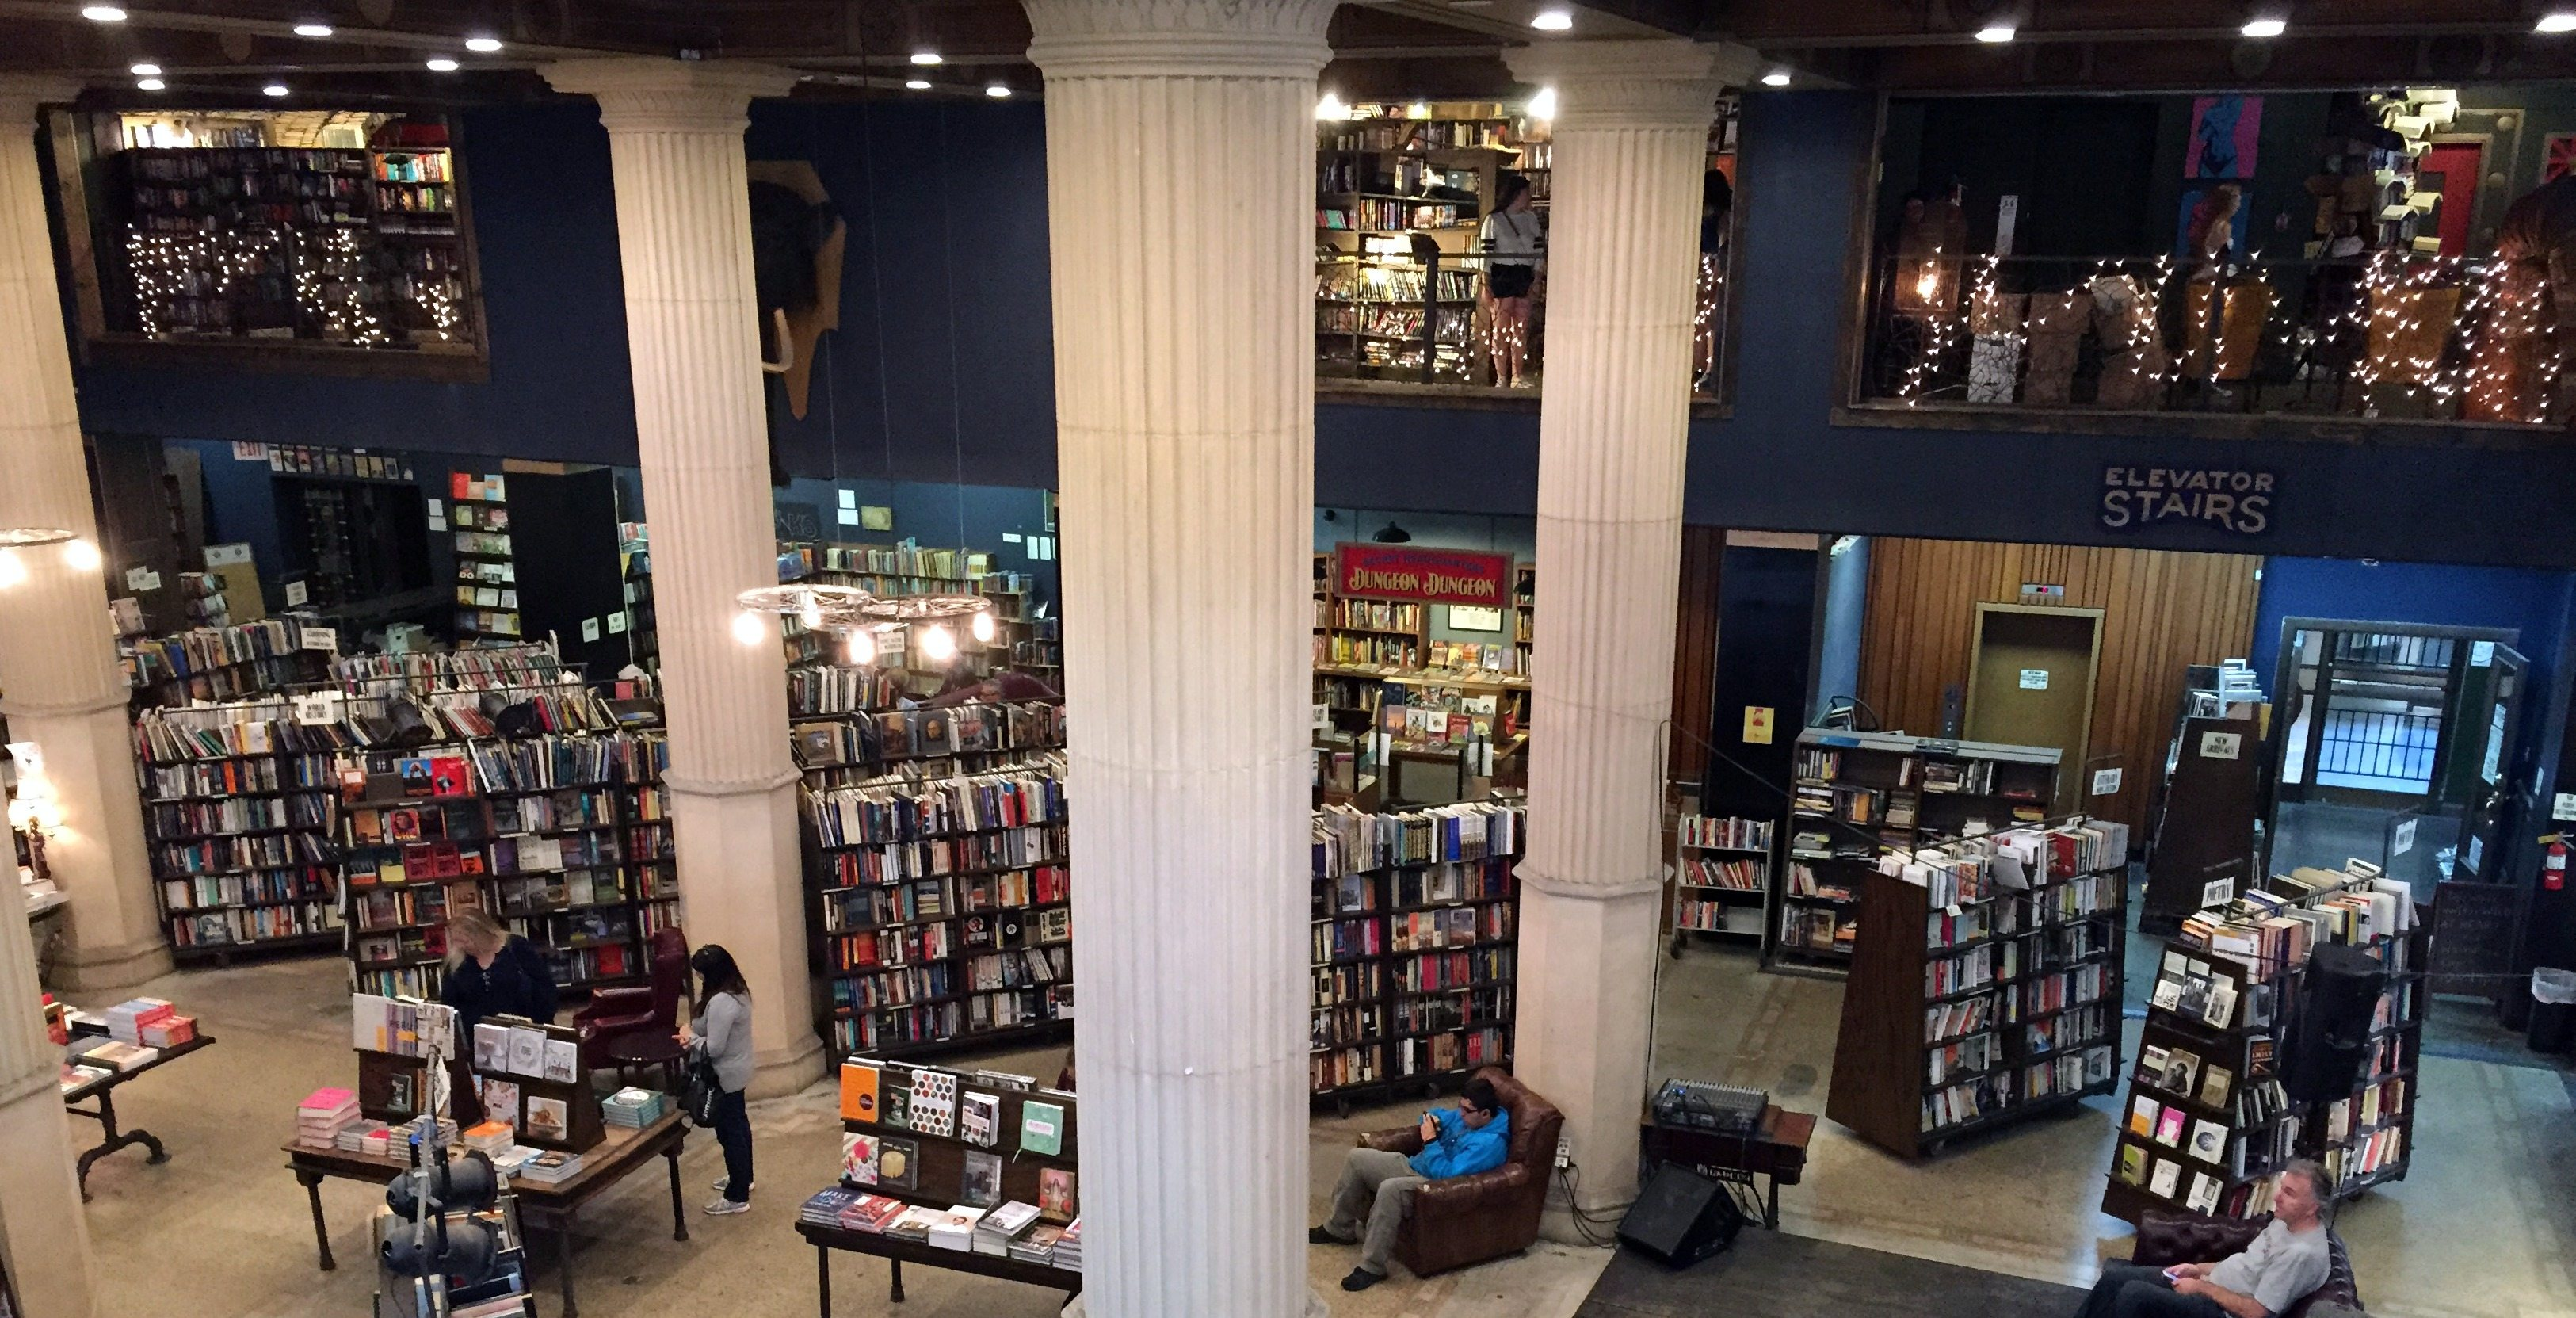 GeekMom Ariane had an adventure with her 4-year-old in Los Angeles, visiting The Last Bookstore.